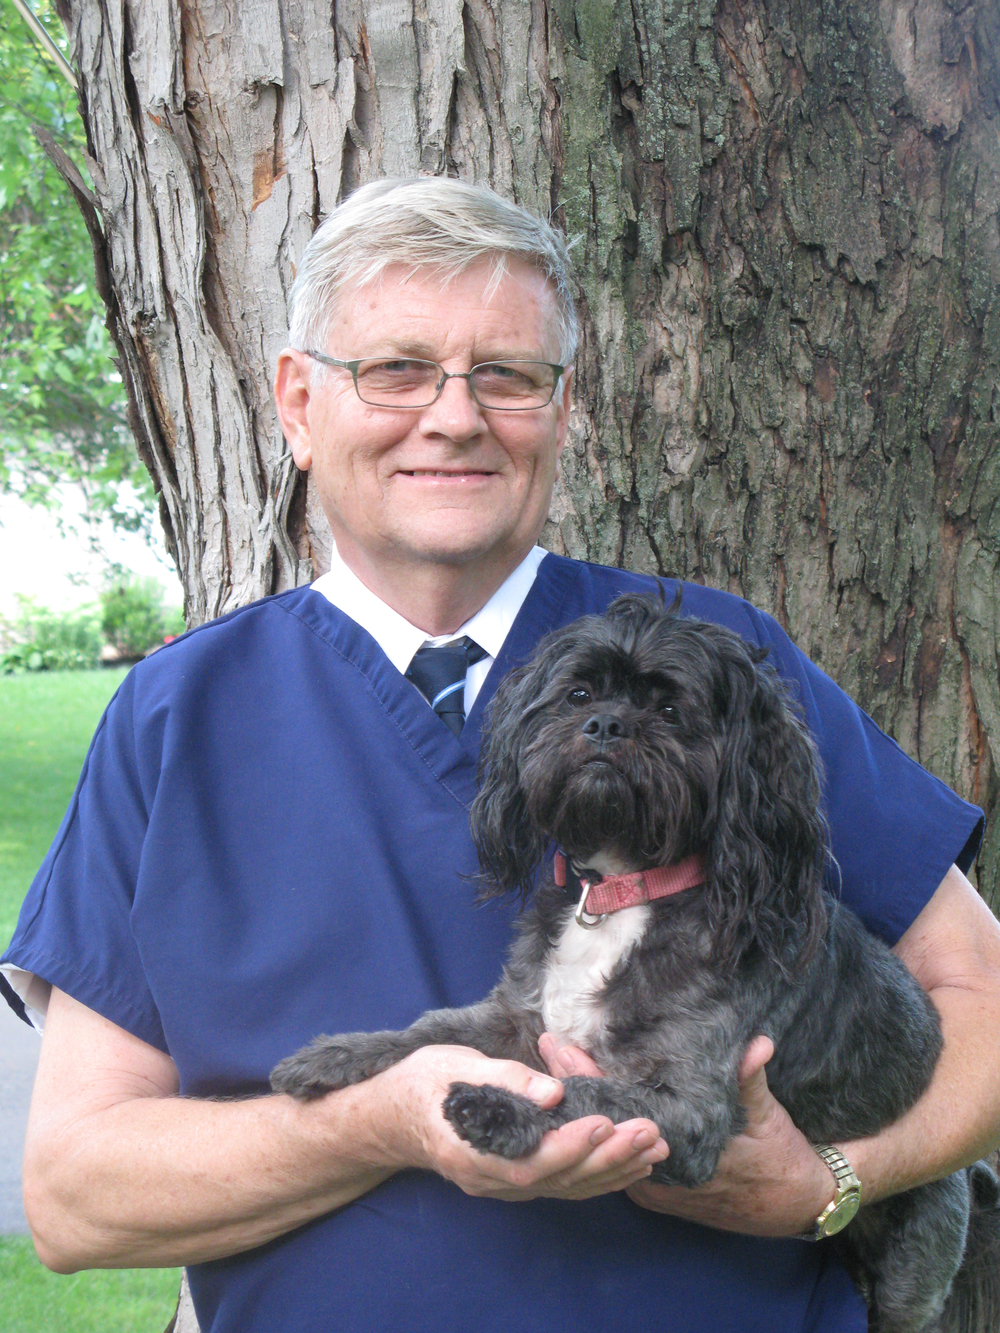 Dr. David Hopps, BVSC, PhD and his dog, Galen